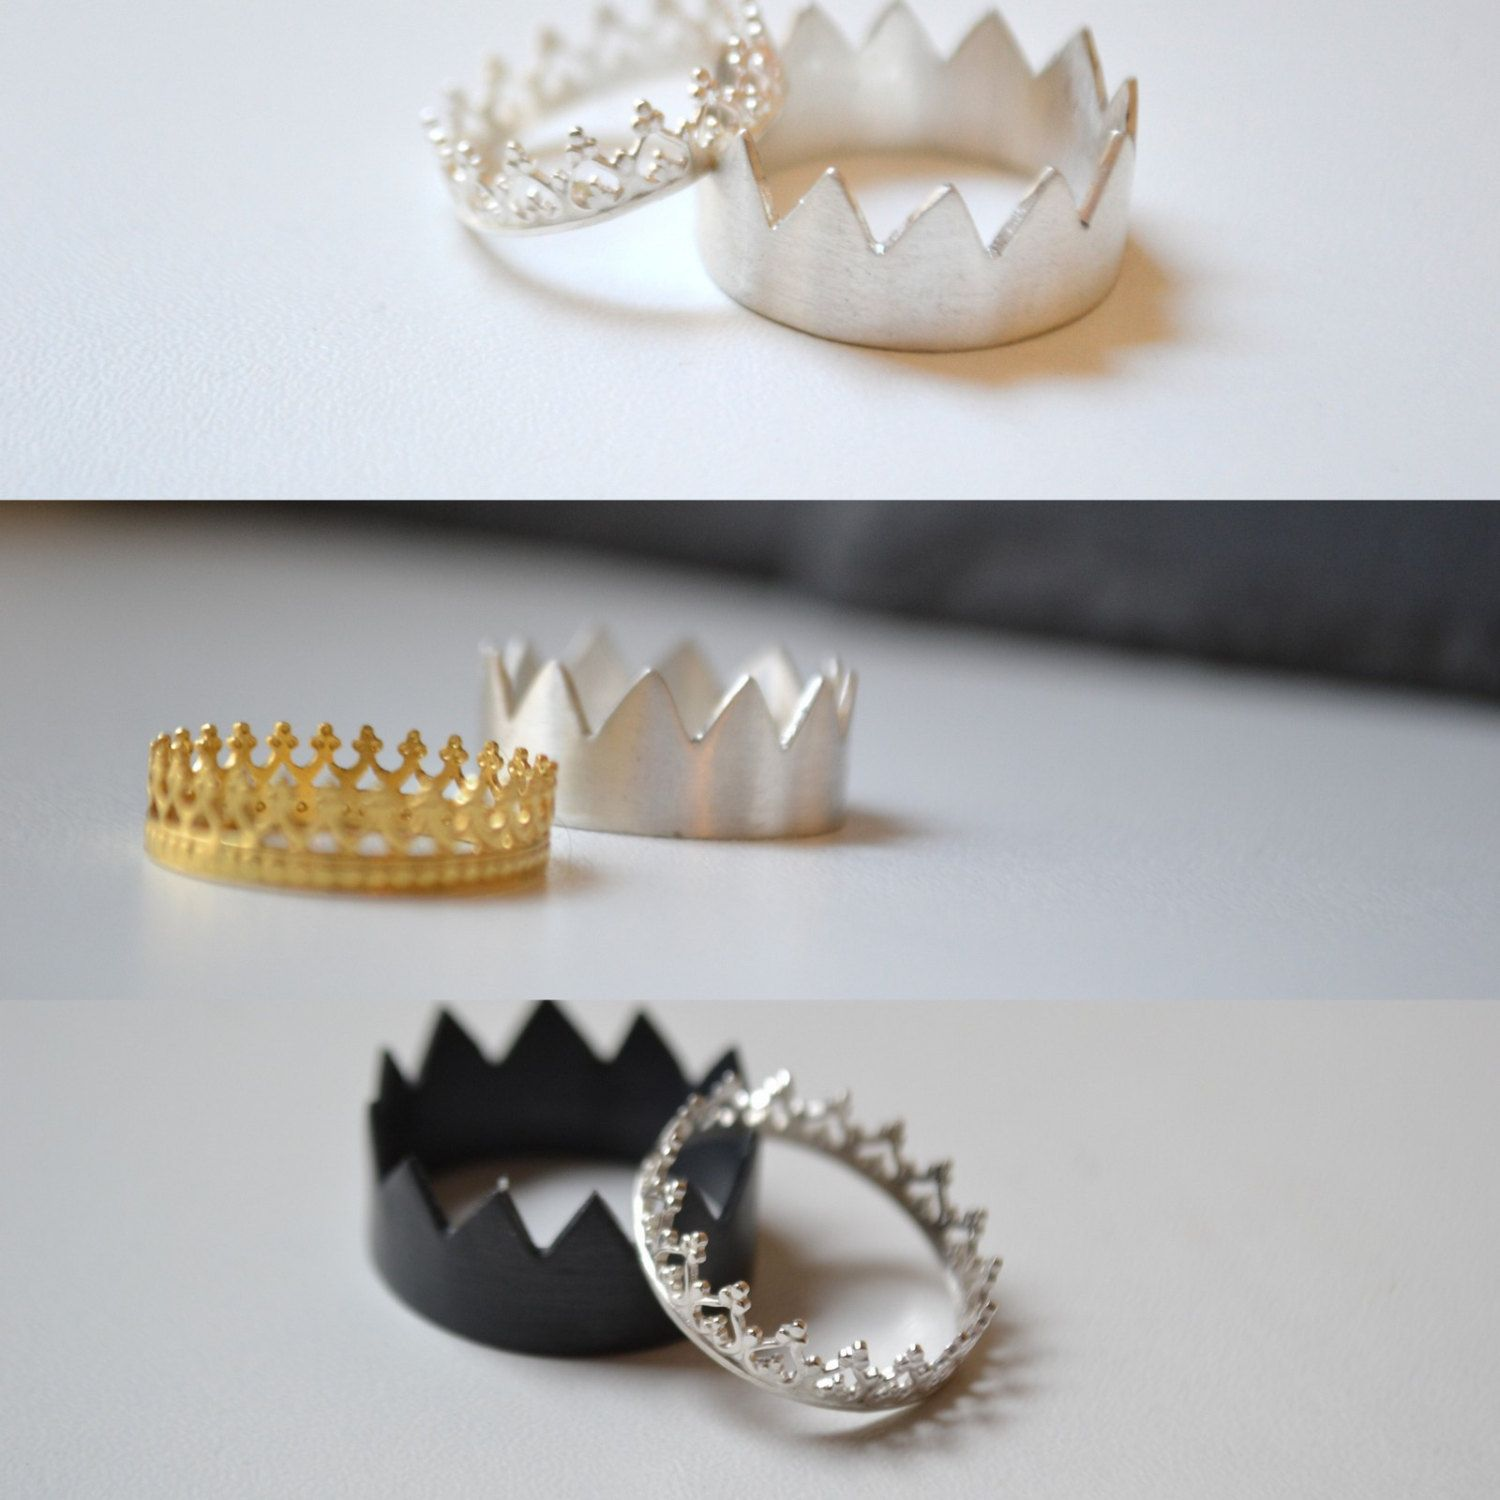 Jewelry Maker In Paris Hand Makes These Crown Rings For Men And Women Wedding